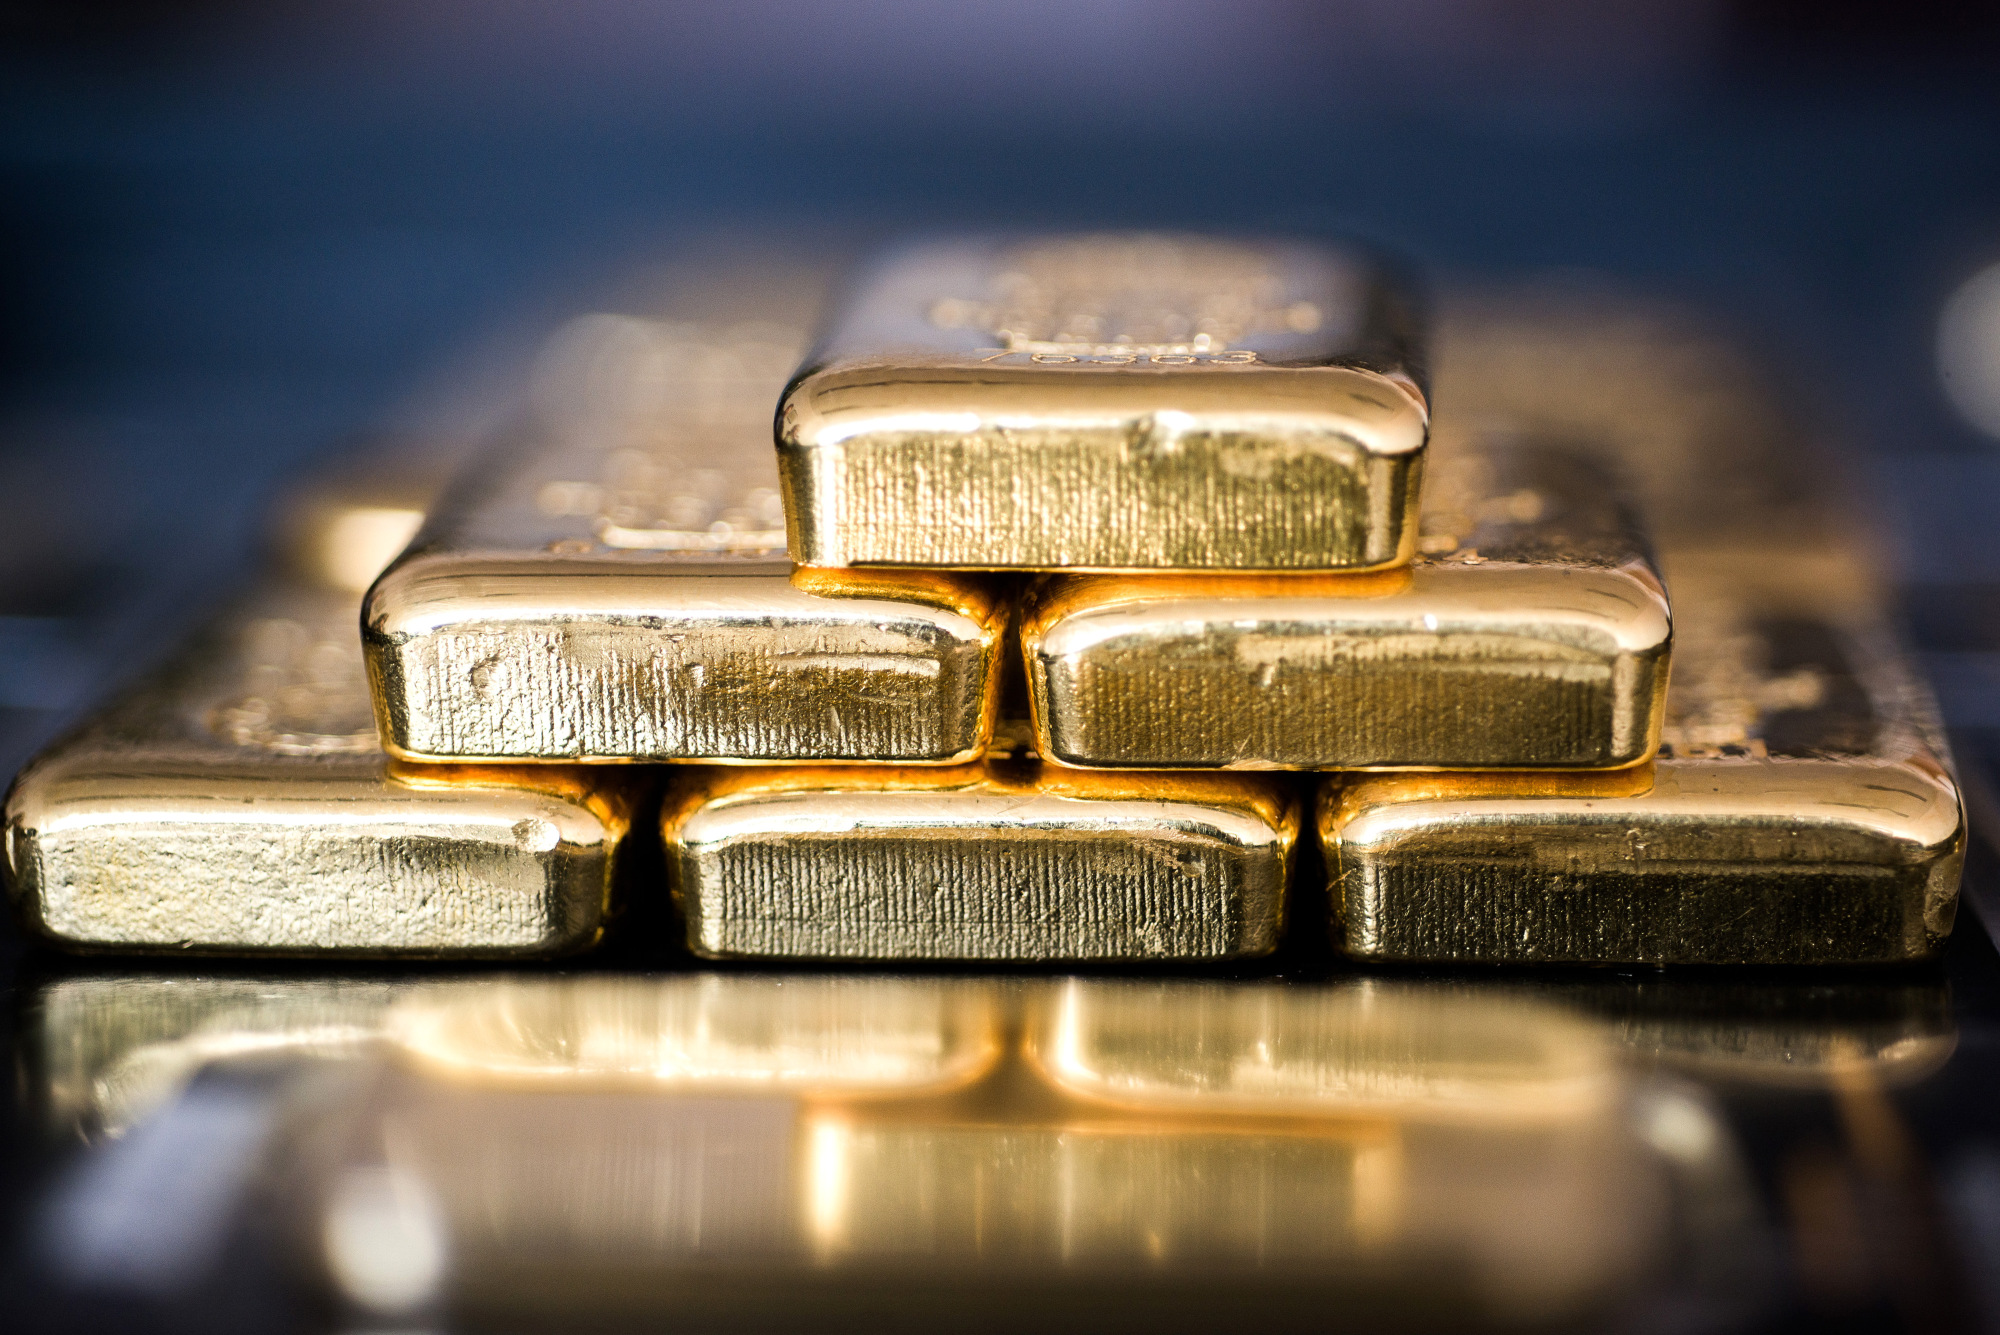 Gold Bars Inside Solar Capital Gold Zrt. As Gold Climbs To One-Year High On ECB Rate View